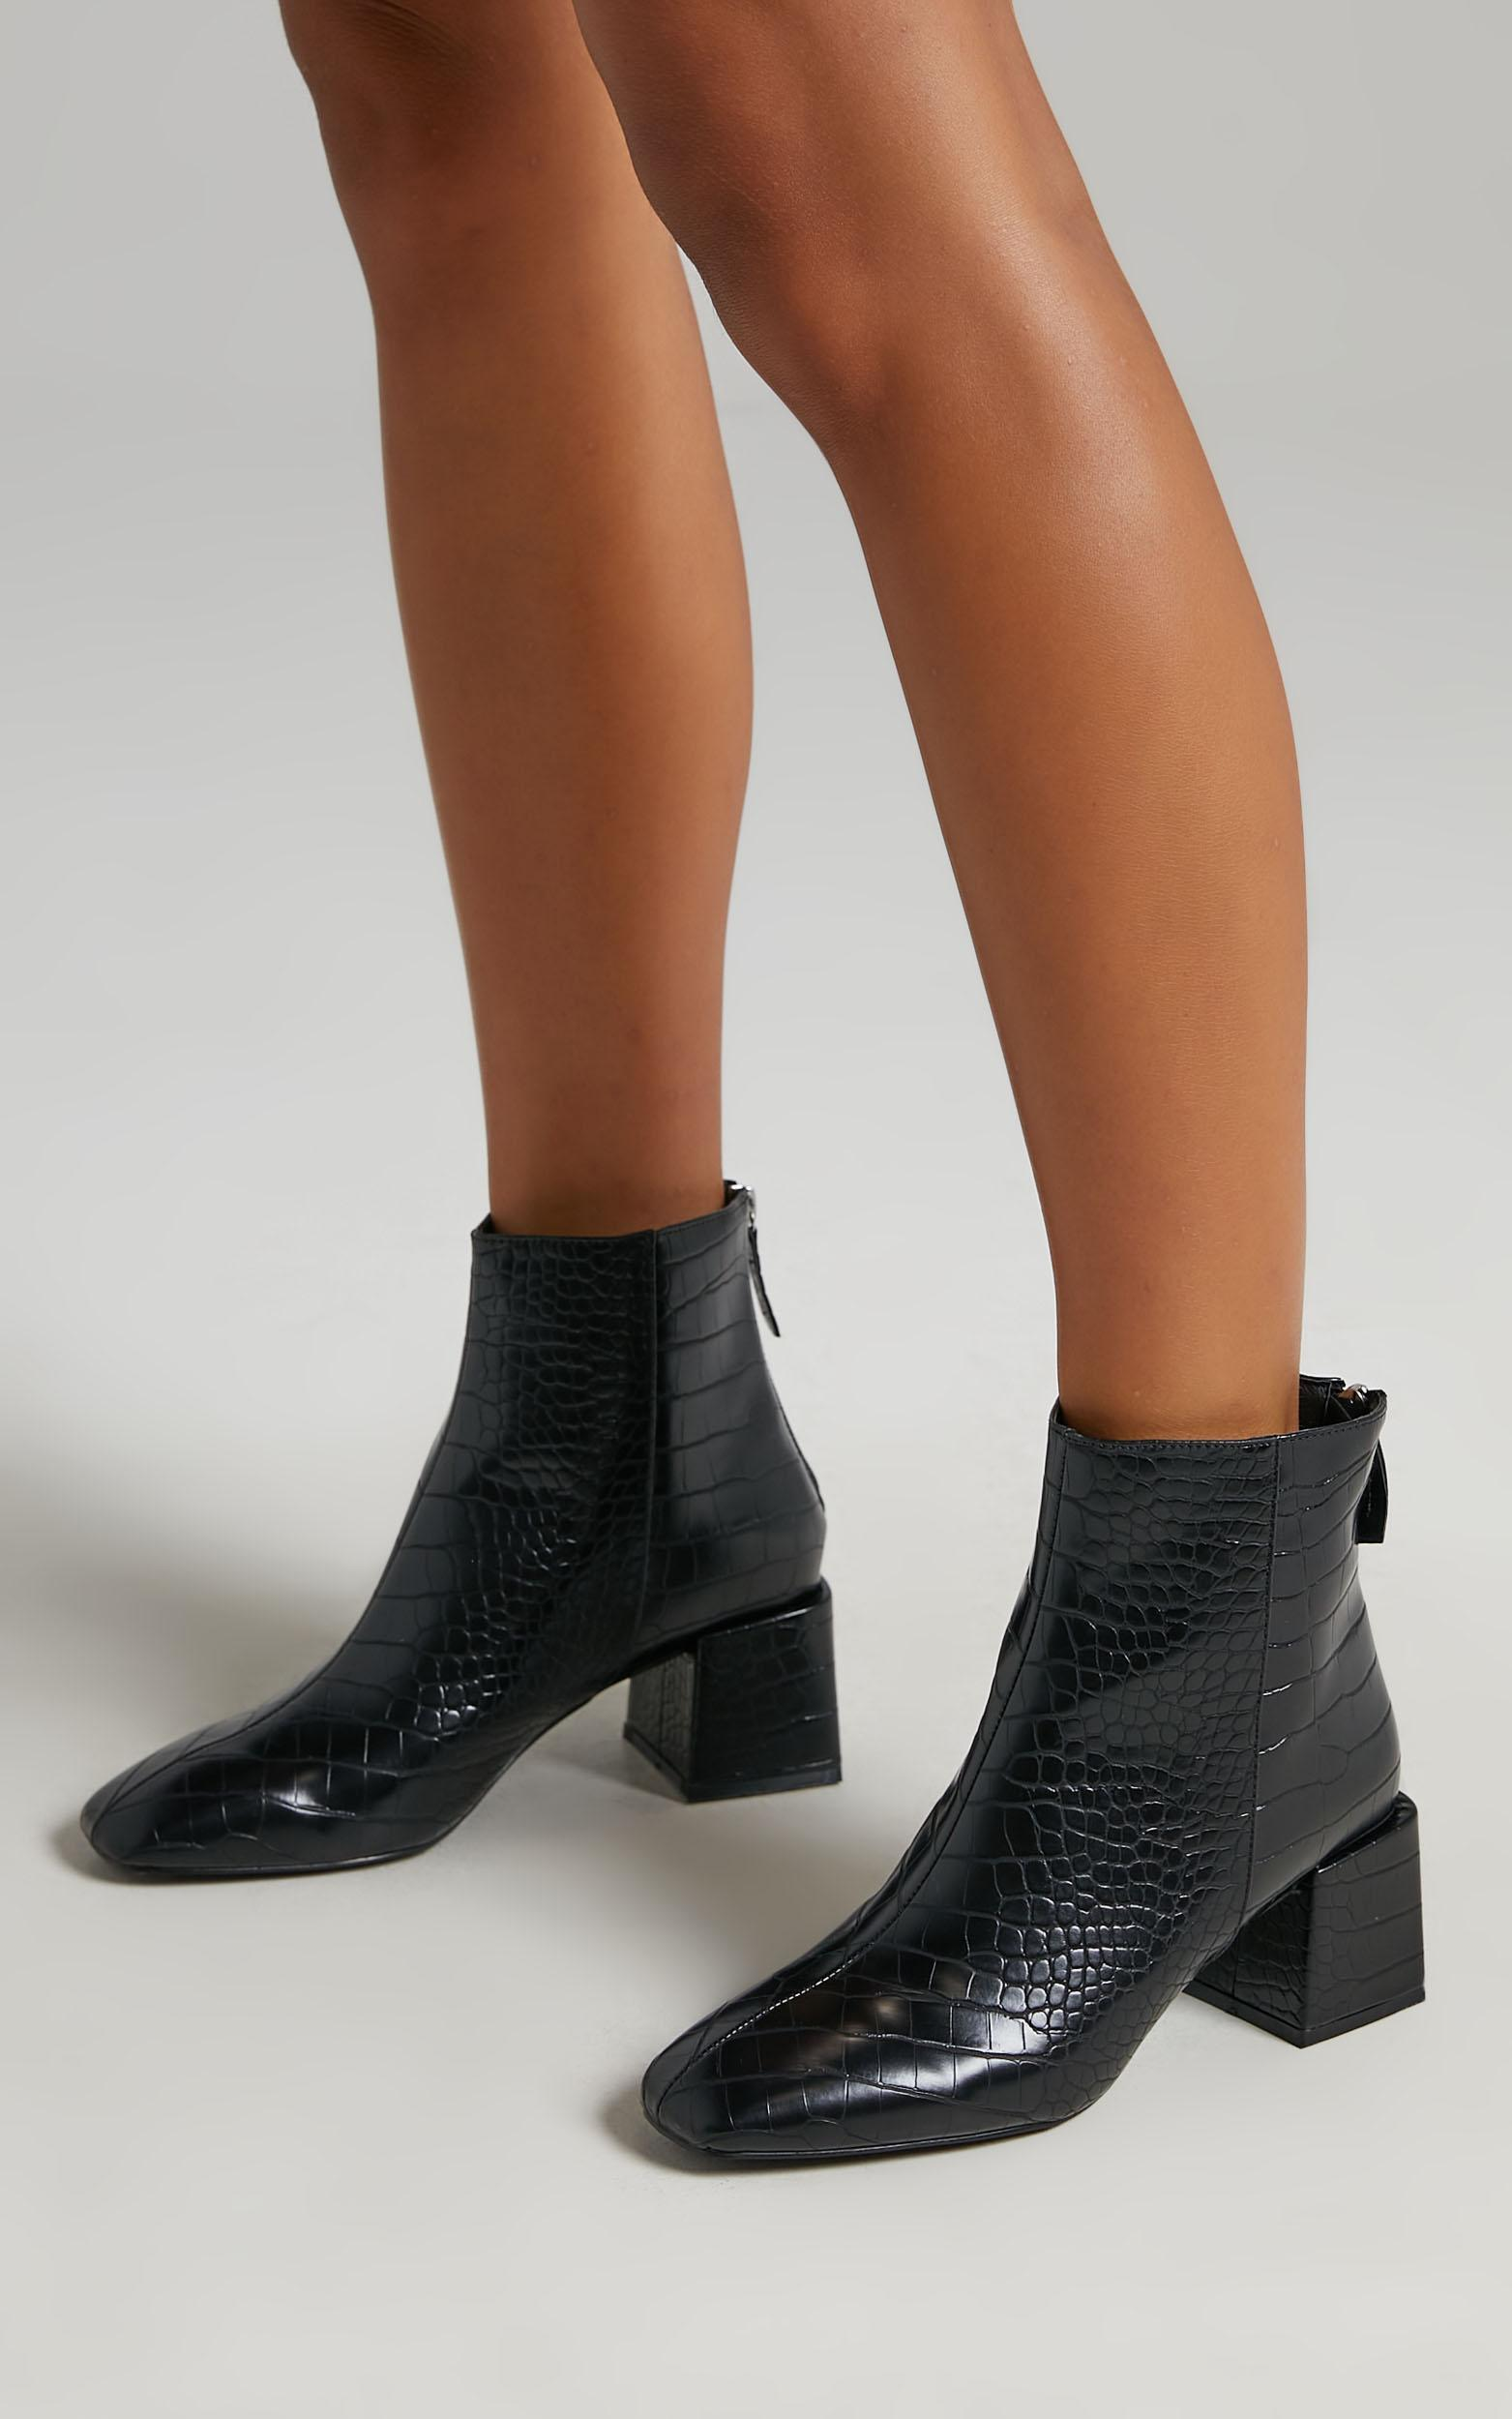 Therapy - Cody Boots in Black Croc Embossed - 05, BLK1, hi-res image number null